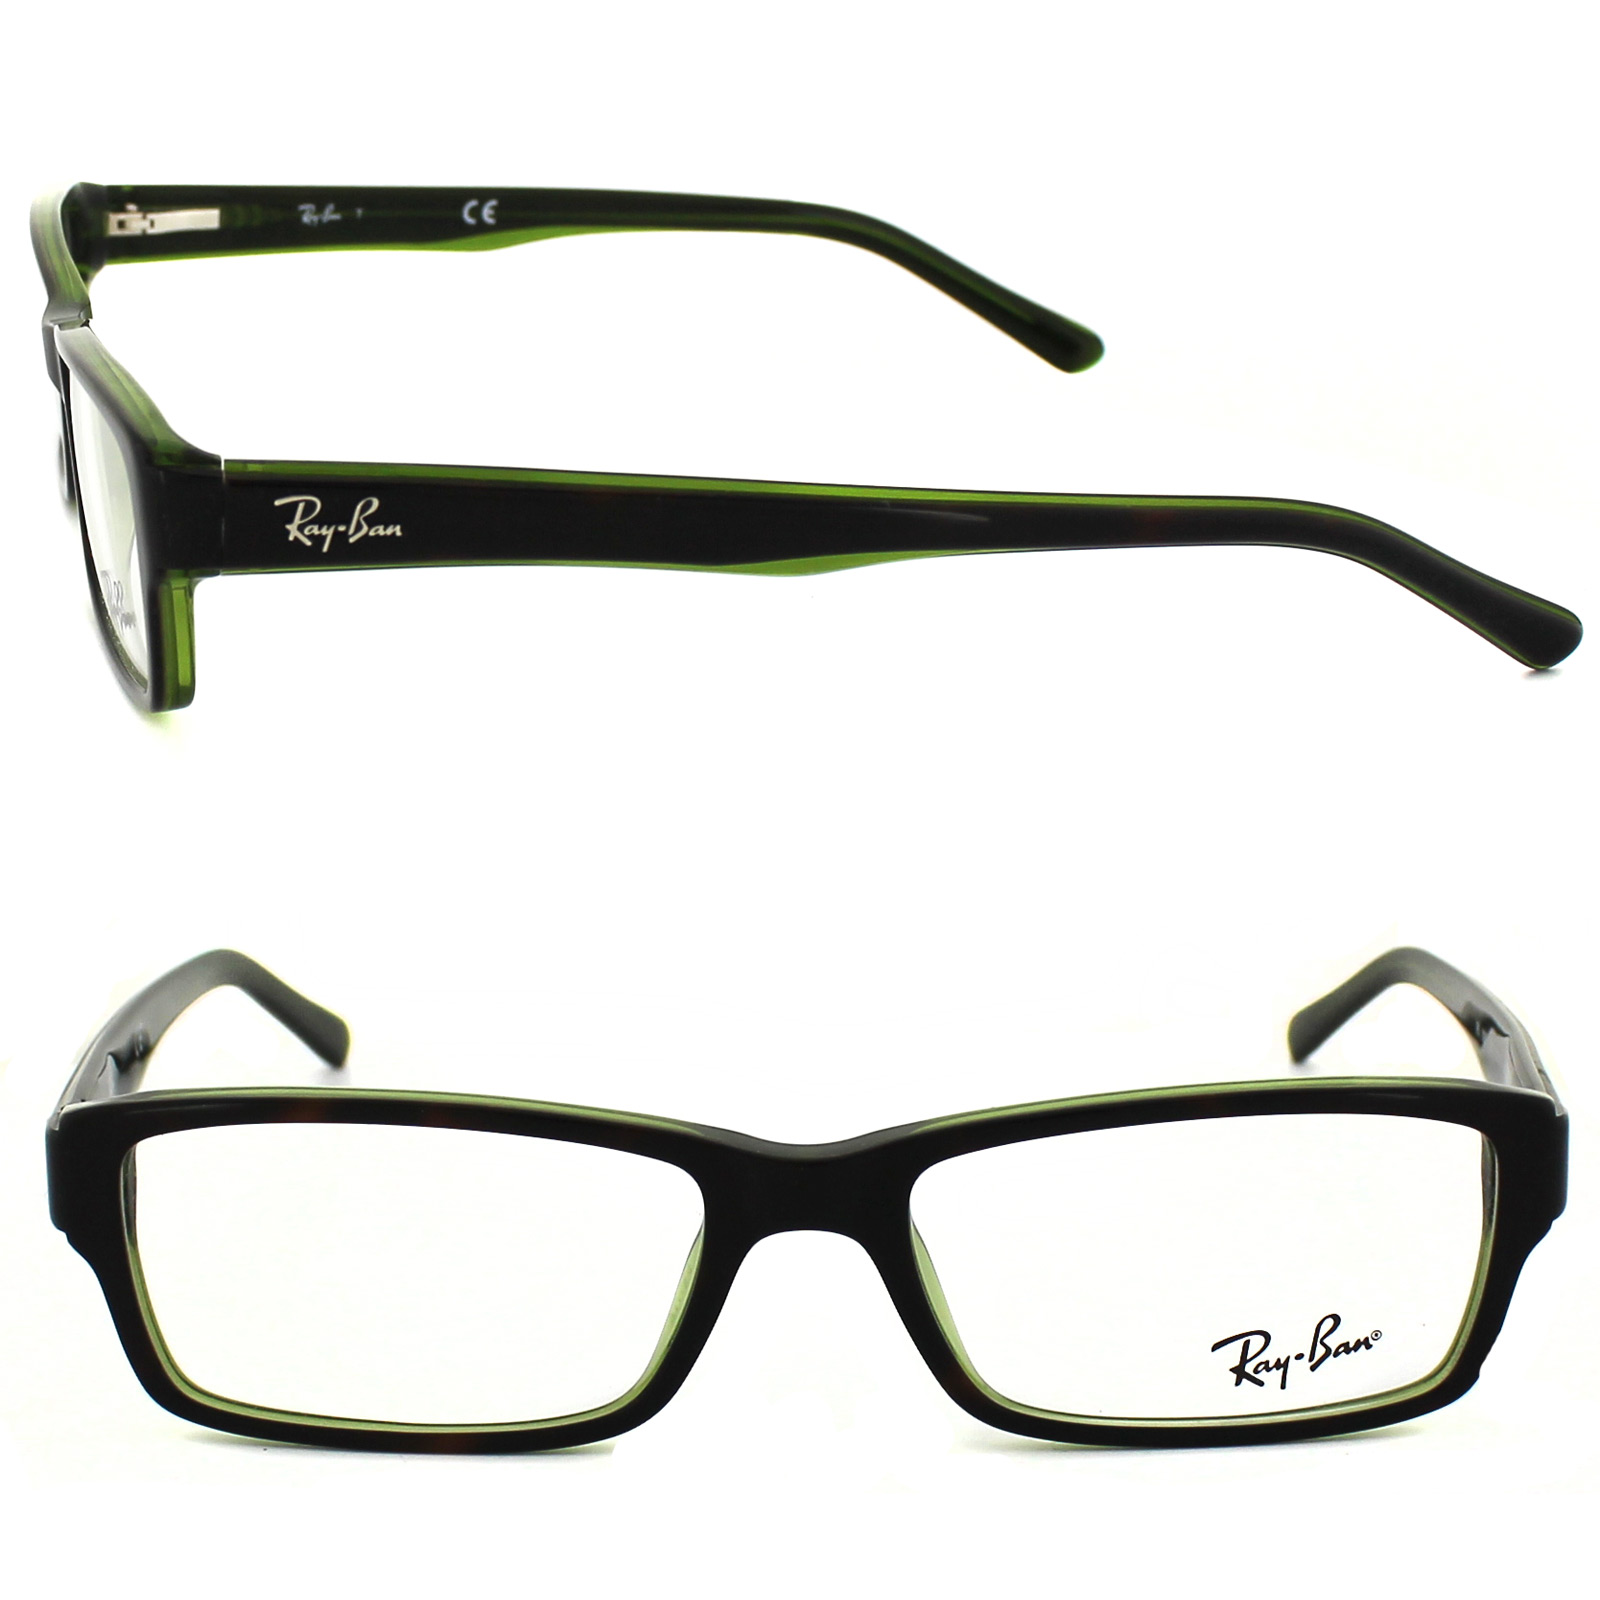 Green Frame Ray Ban Glasses : Ray-Ban Glasses Frames 5169 2383 Top Havana On Green ...